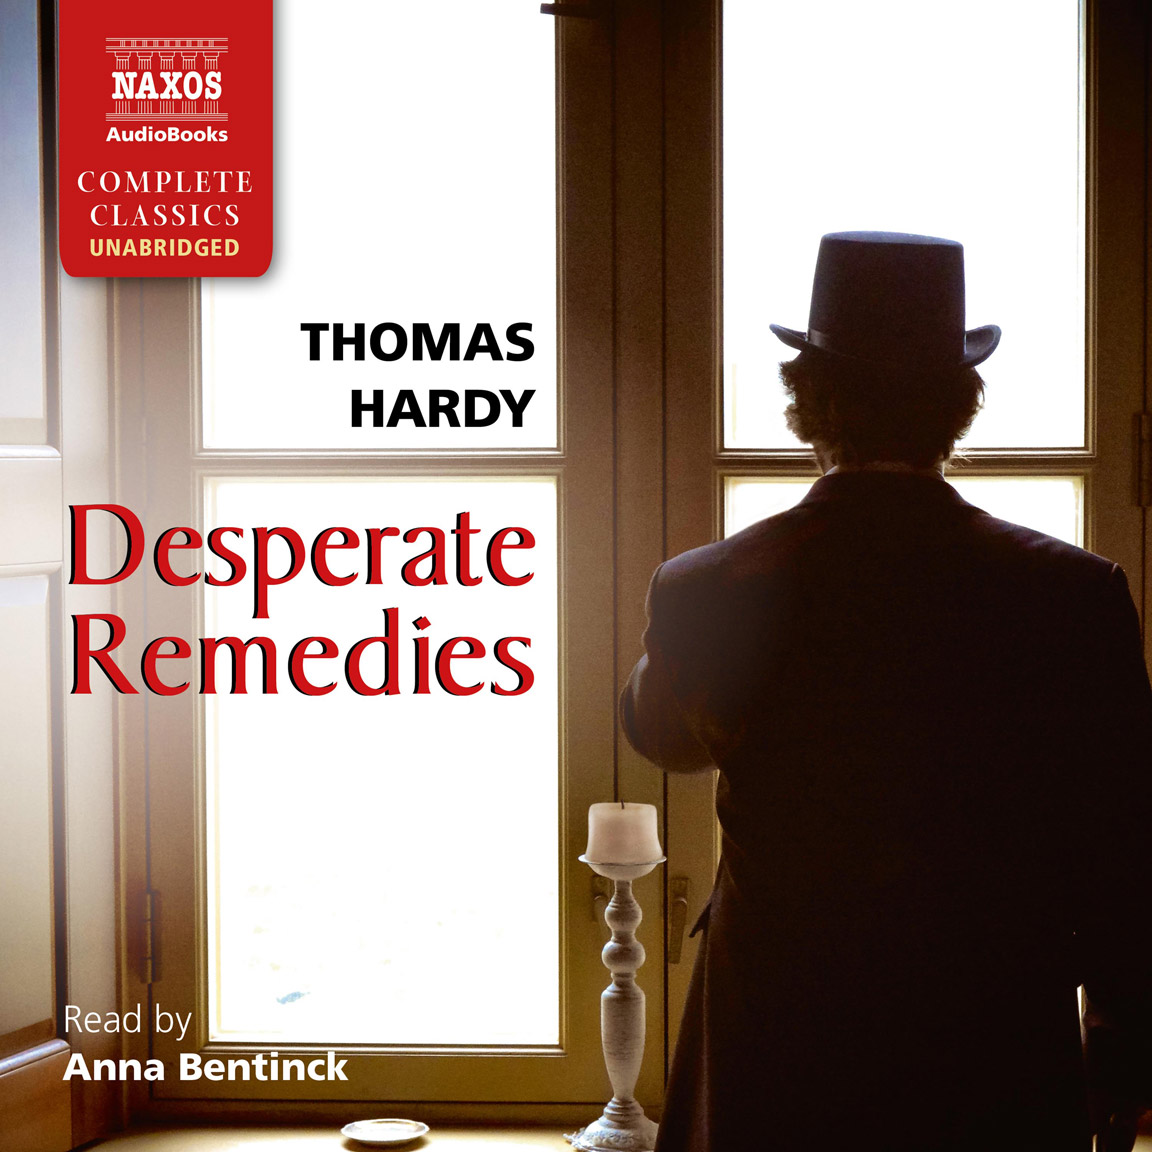 Desperate Remedies (unabridged)